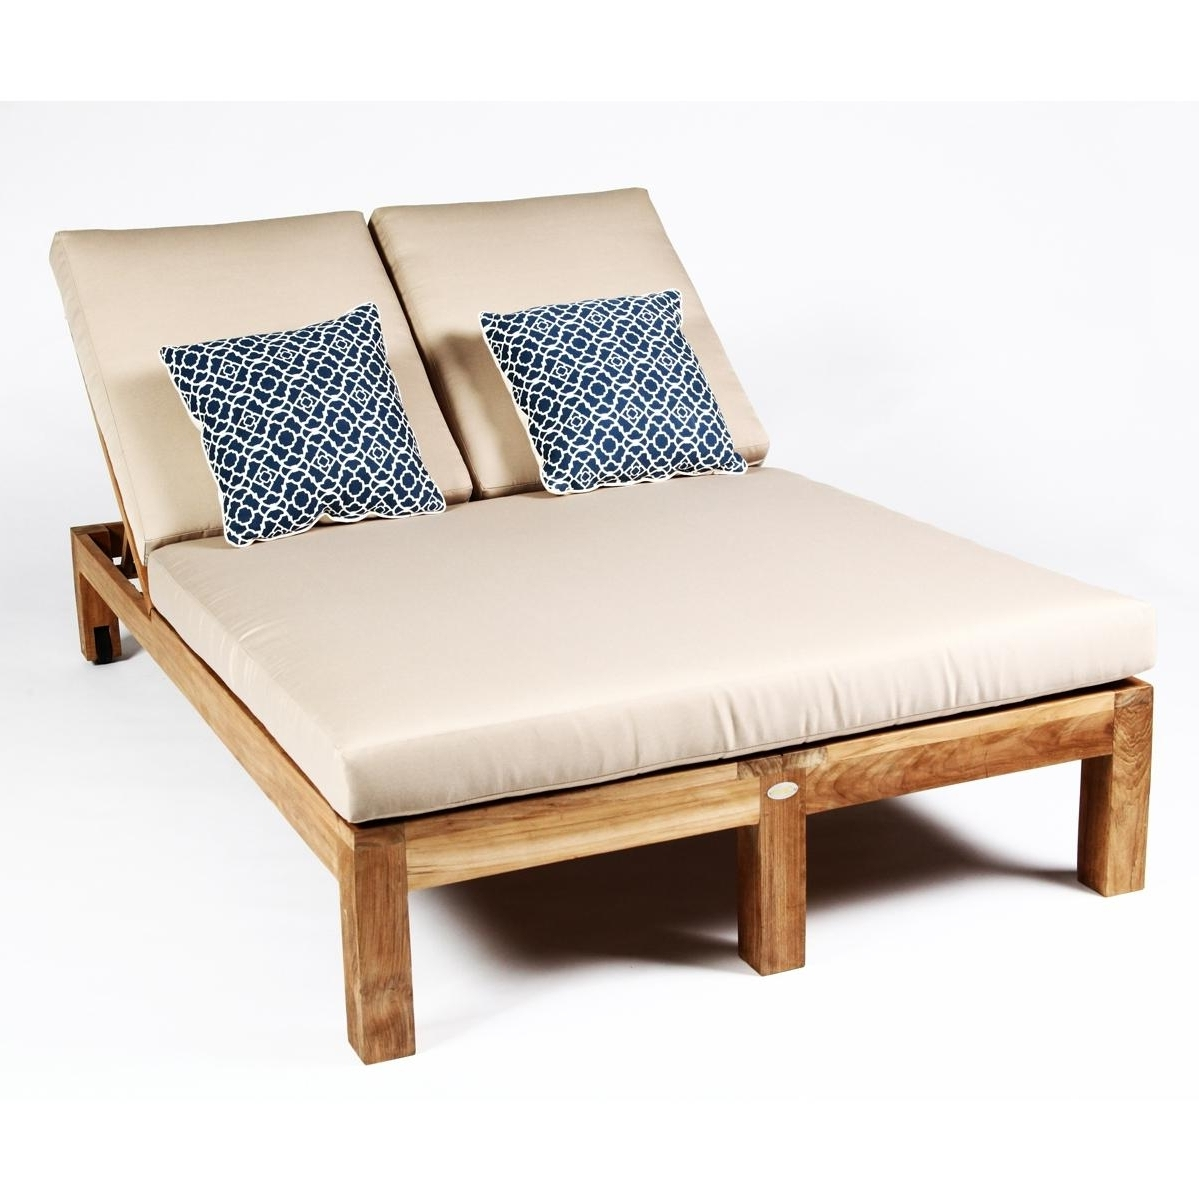 Popular Teak Wood Double Chaise Lounge Chair • Lounge Chairs Ideas Regarding Dual Chaise Lounge Chairs (View 12 of 15)